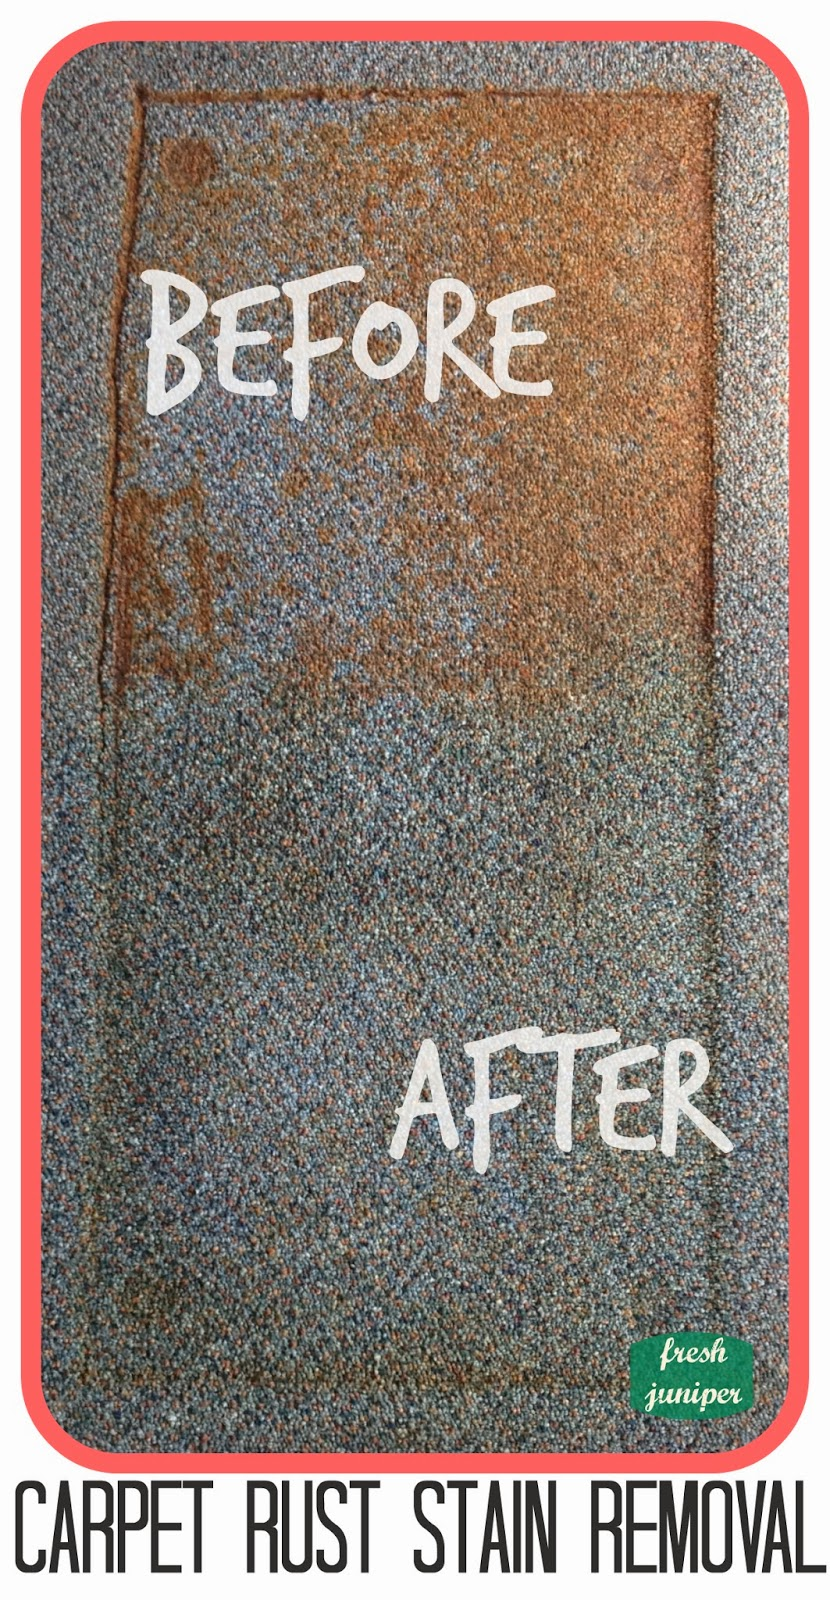 fresh juniper: Rust Stains on Carpet and Metal